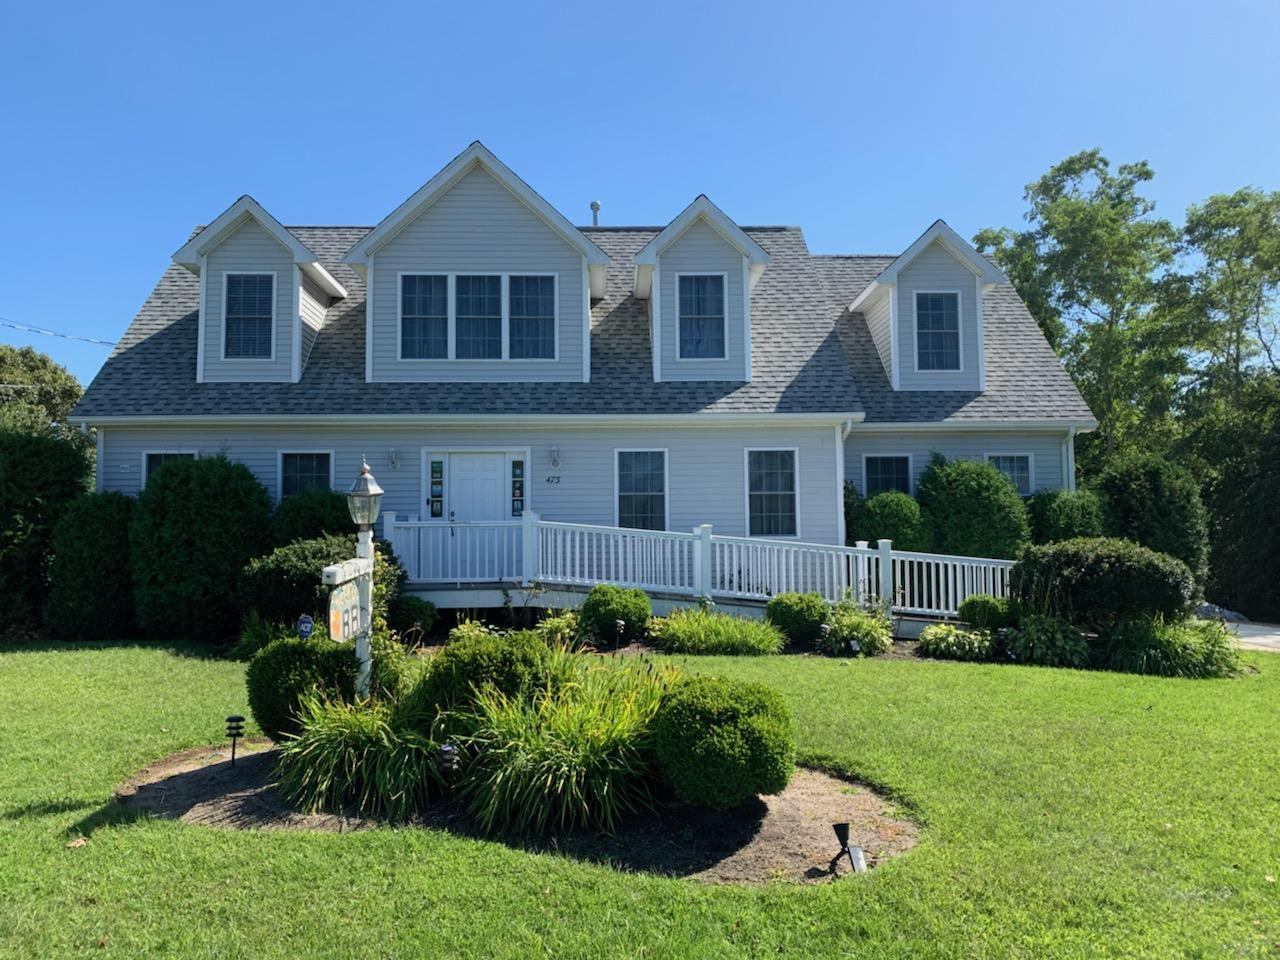 click to view more details 473 Main Street, Harwich, MA 02645